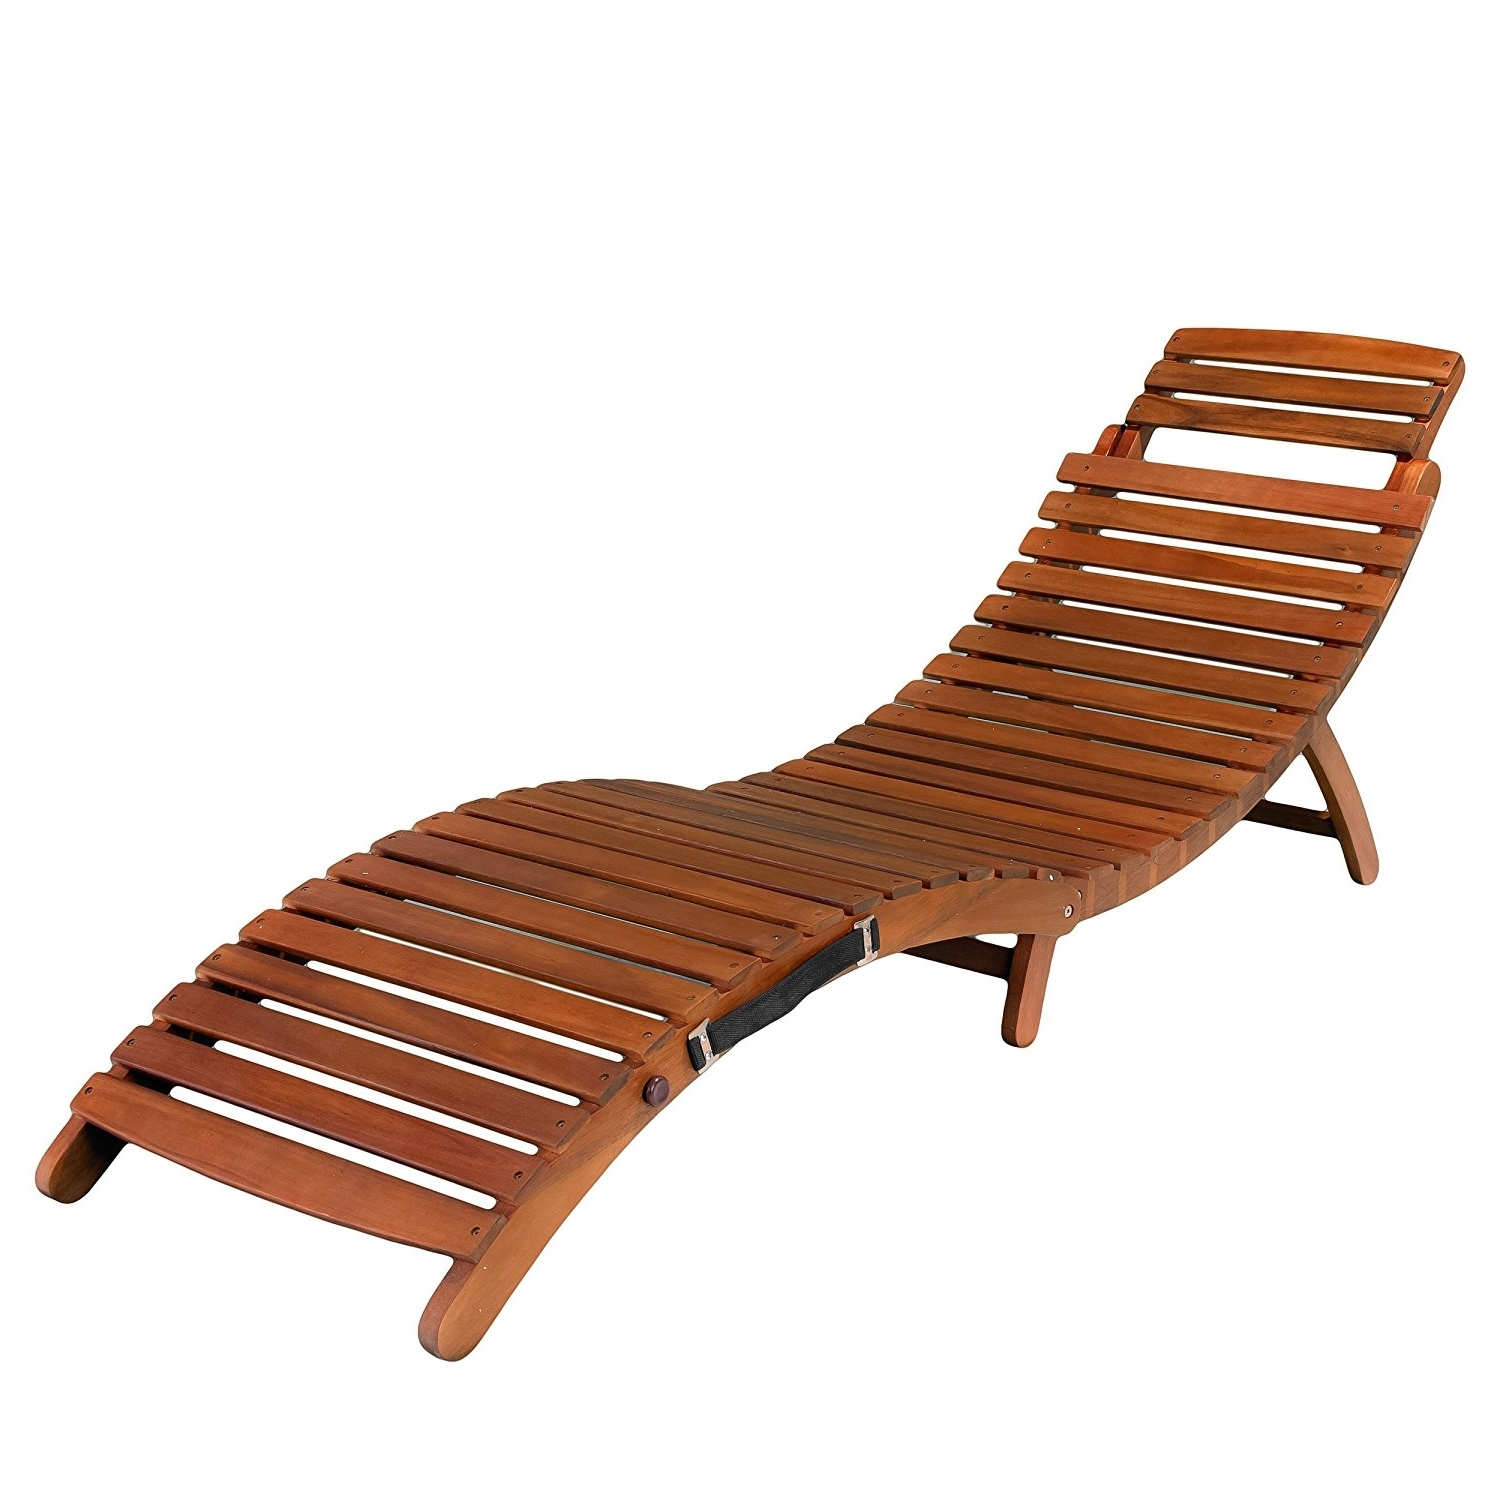 Hardwood Chaise Lounge Chairs With 2018 Amazon: Best Selling Del Rio Wood Outdoor Chaise Lounge (View 7 of 15)